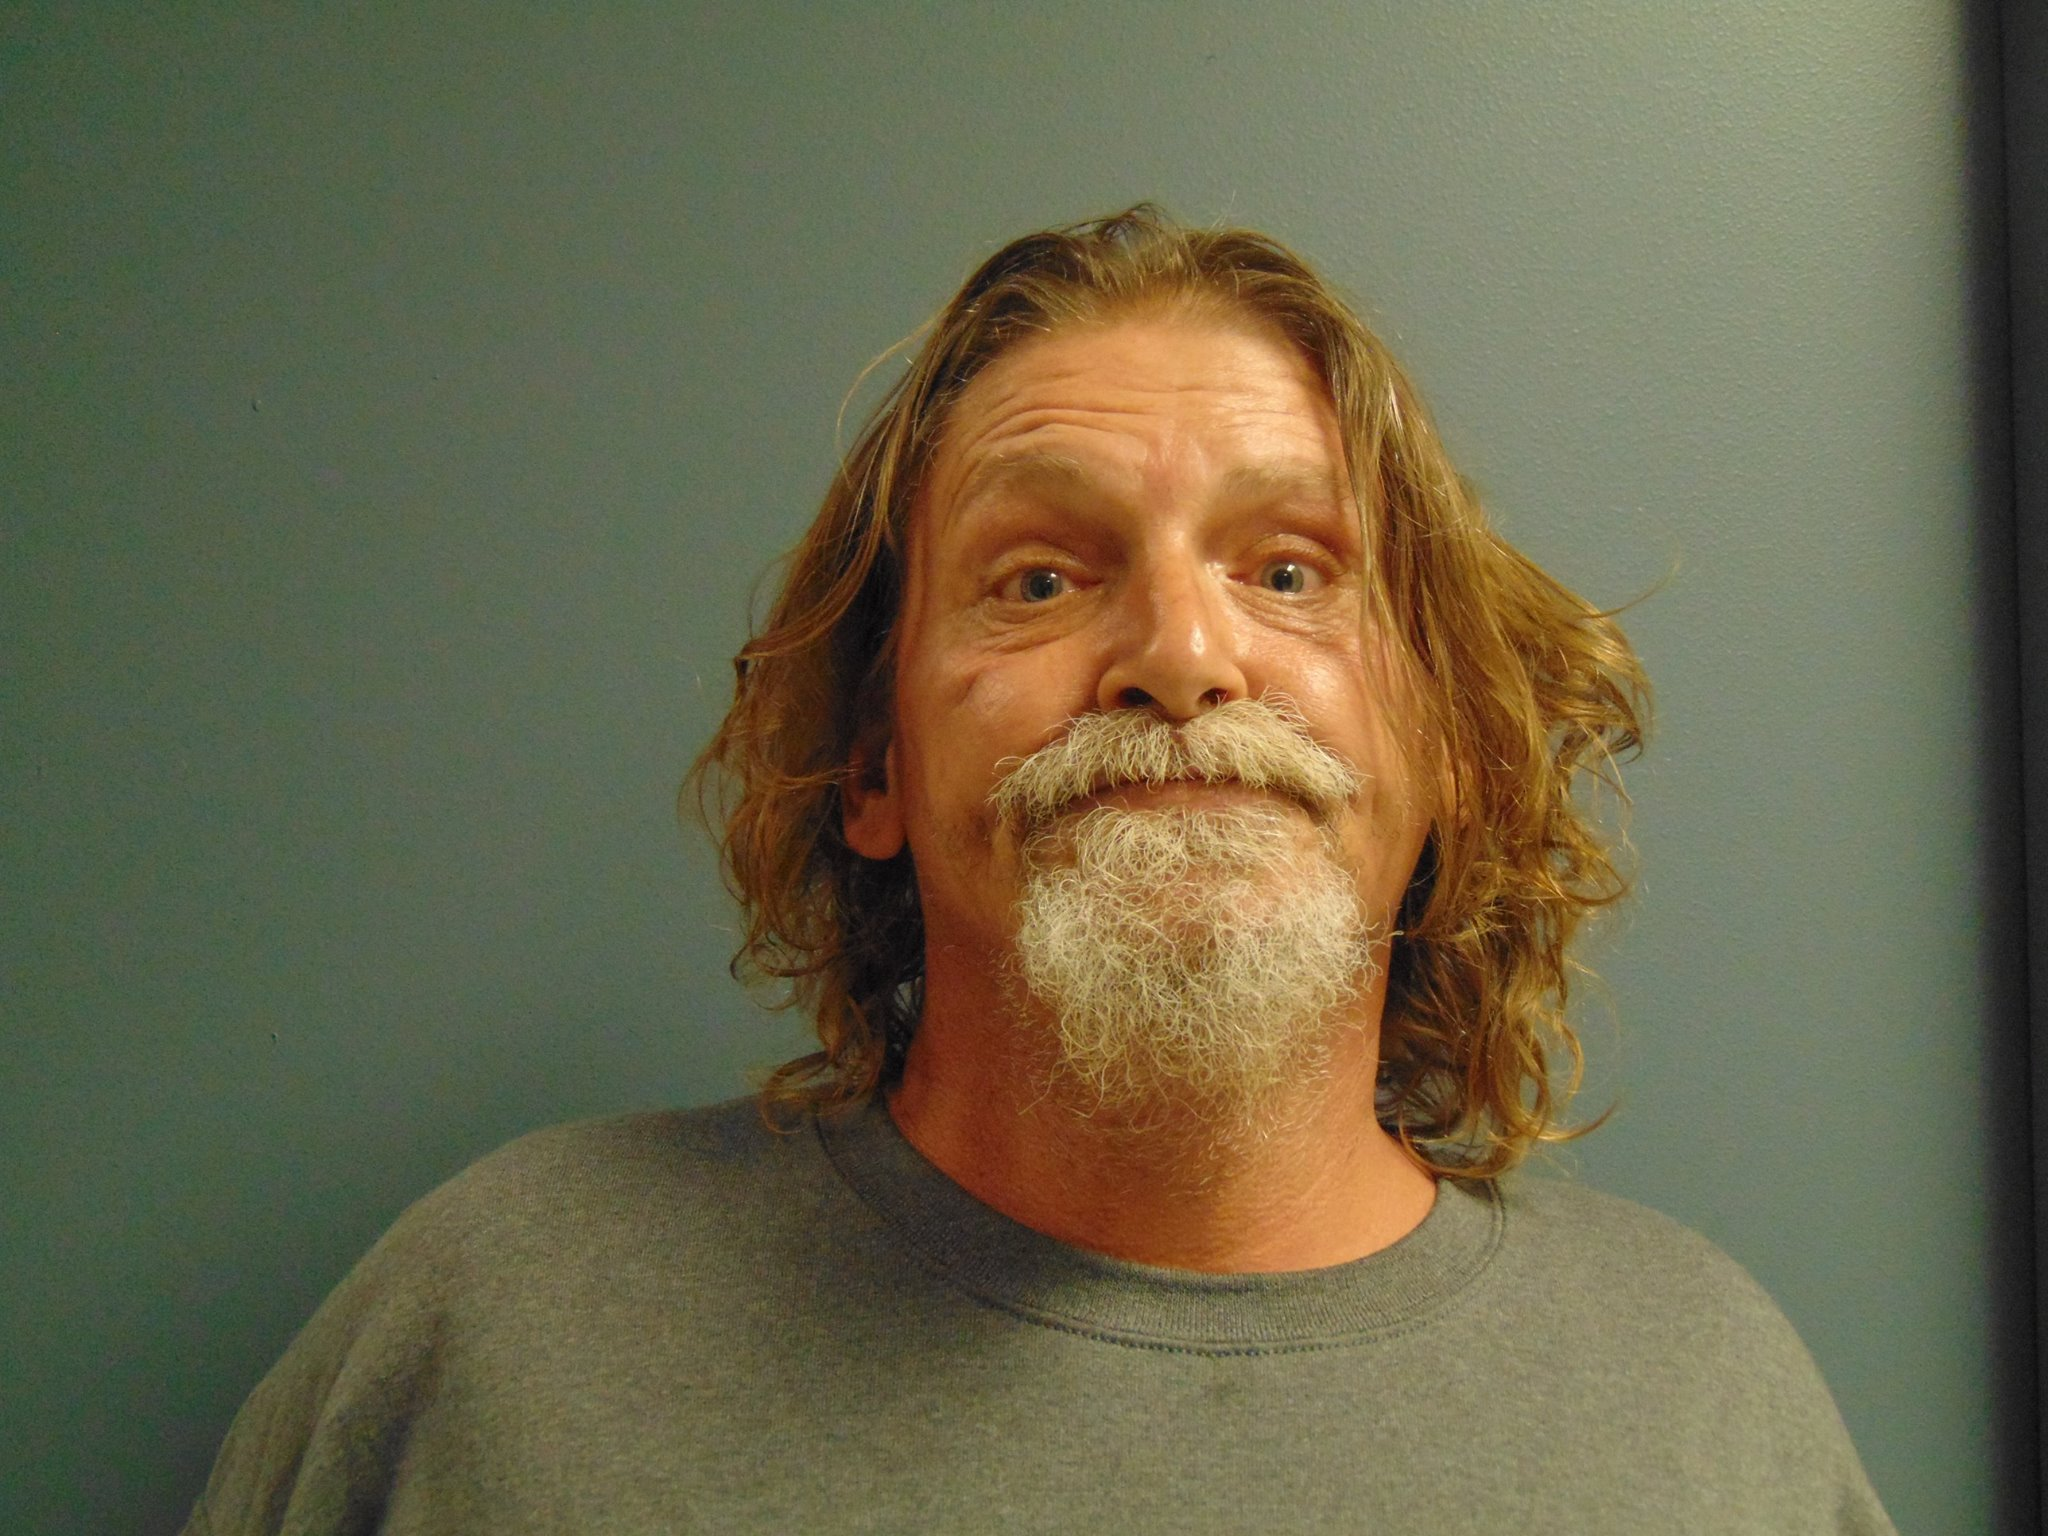 Brian G. Parks was charged Tuesday with first-degree assault, armed criminal actions and unlawful possession of a firearm.Additional charges are expected to be filed soon. (Harrisonville PD)